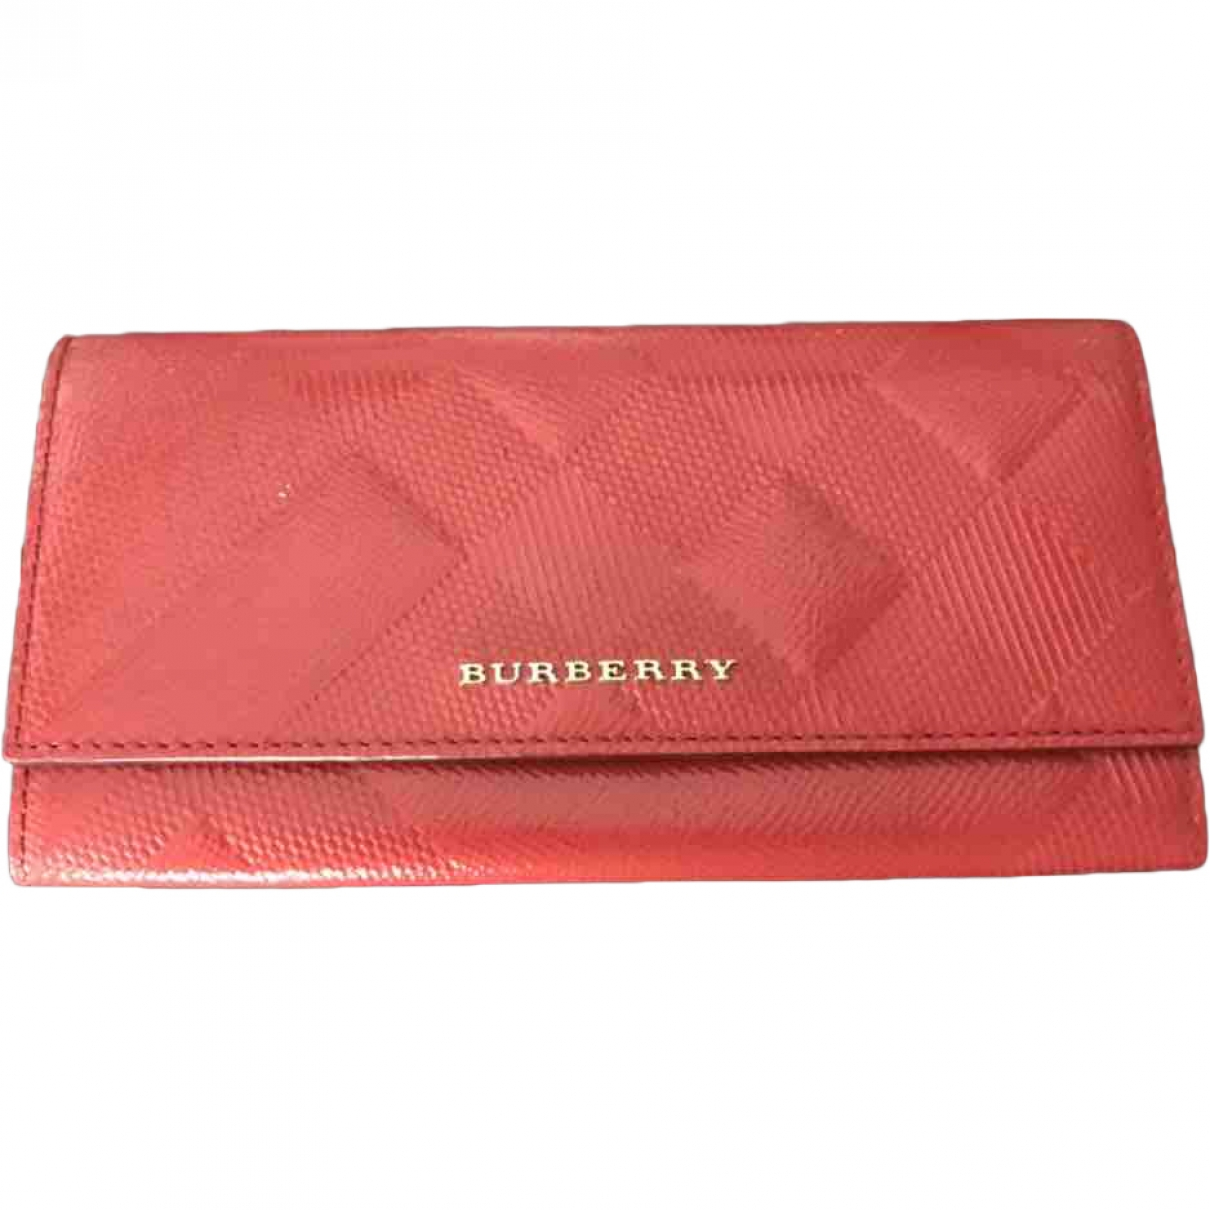 Burberry \N Red Leather wallet for Women \N